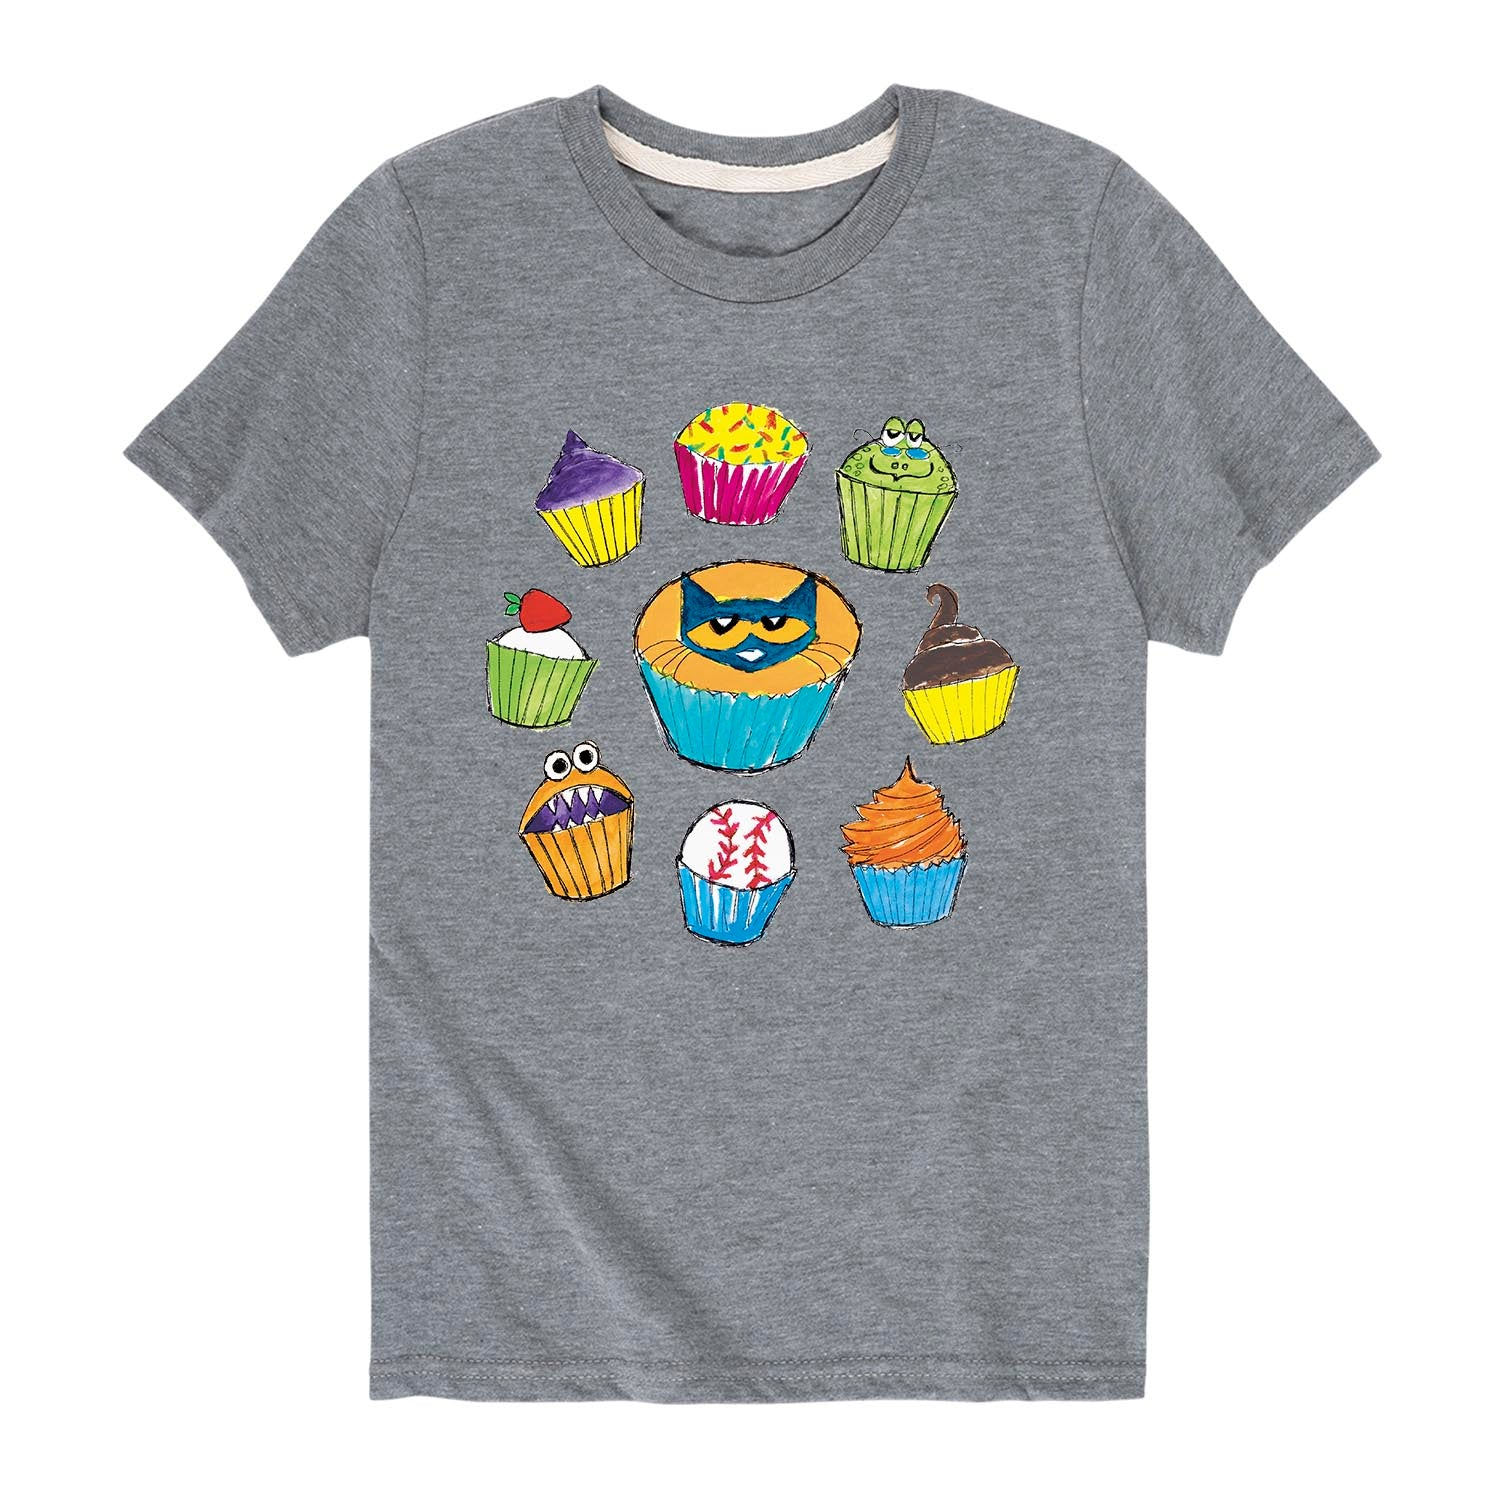 Cupcake Circle - Youth & Toddler Short Sleeve T-Shirt